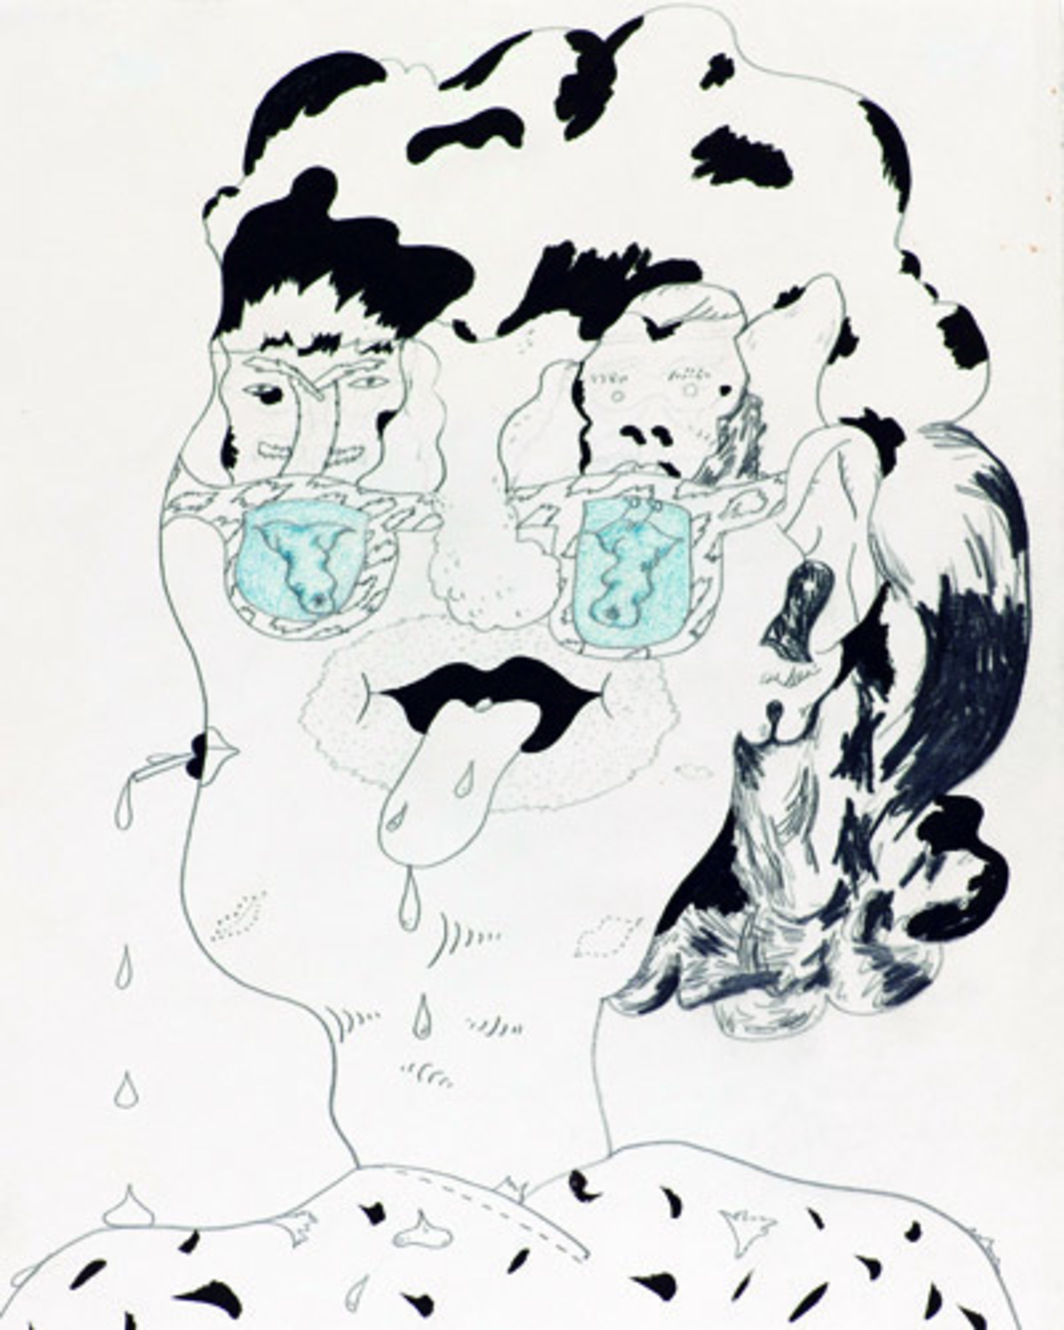 Jim Nutt, Drawing for Wiggly Woman, 1966, graphite, colored pencil, ink on paper, 12 1/2 x 9 5/8""